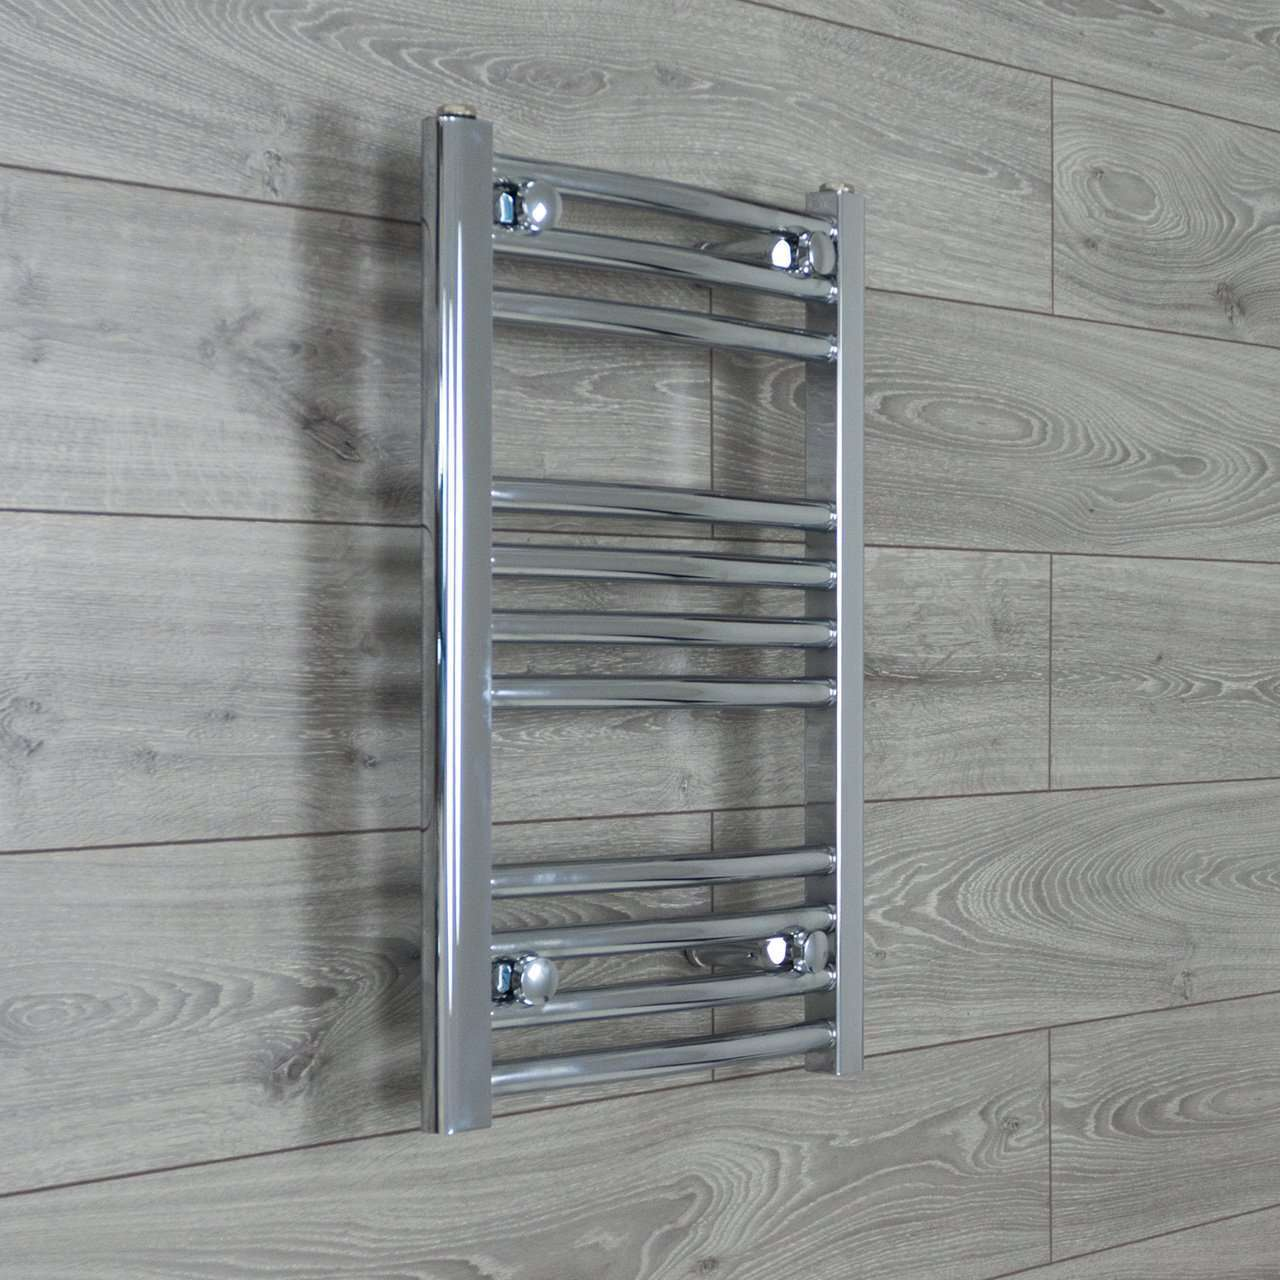 400mm Wide 600mm High Curved Chrome Heated Towel Rail Radiator HTR,Towel Rail Only